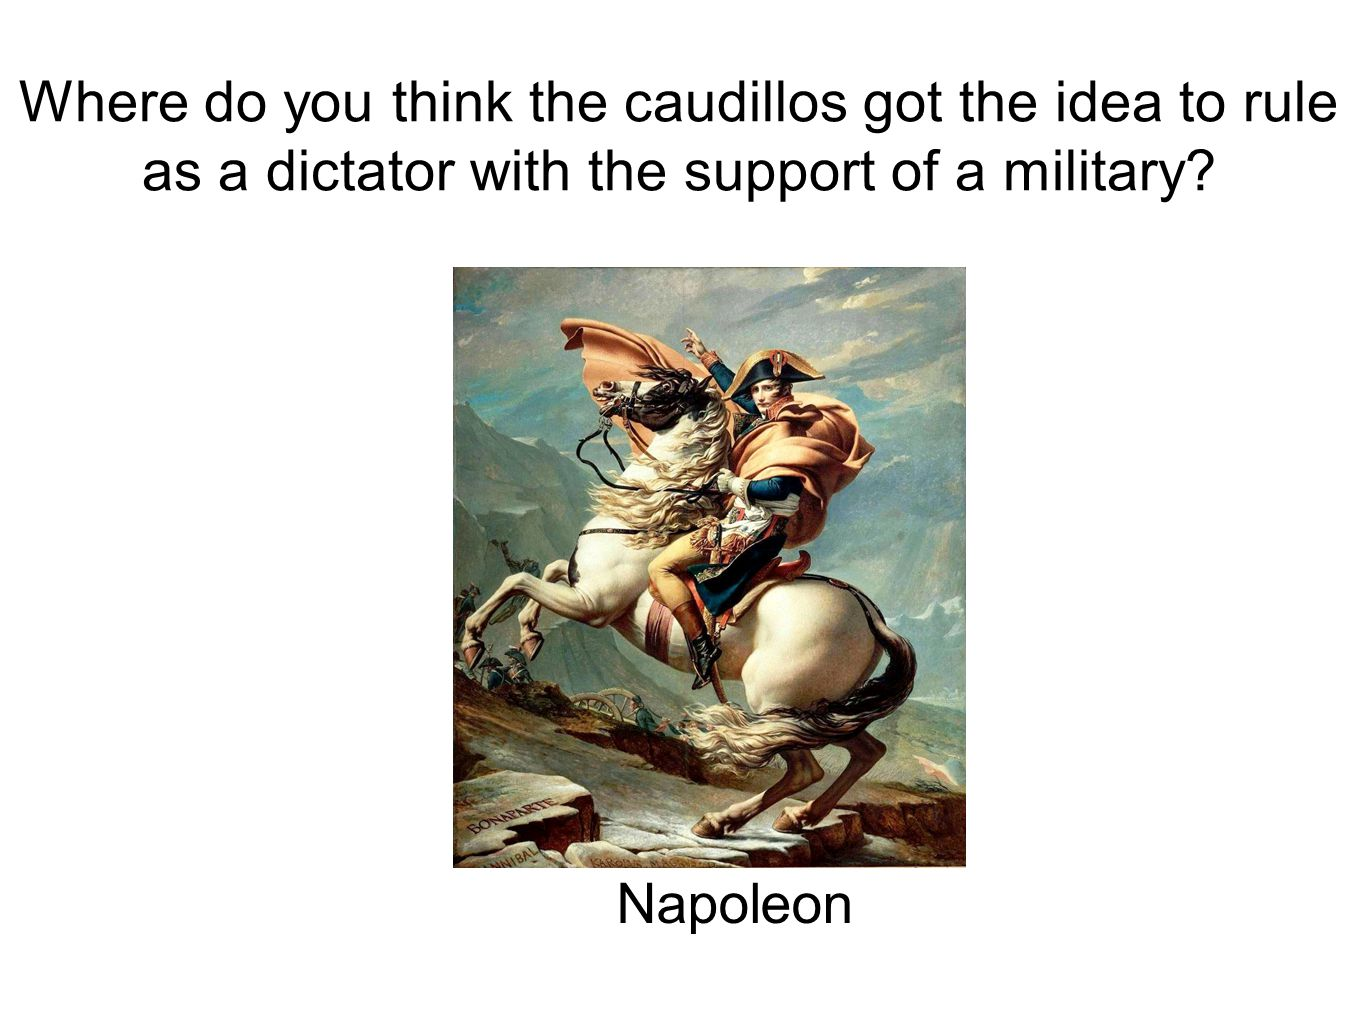 Where do you think the caudillos got the idea to rule as a dictator with the support of a military.